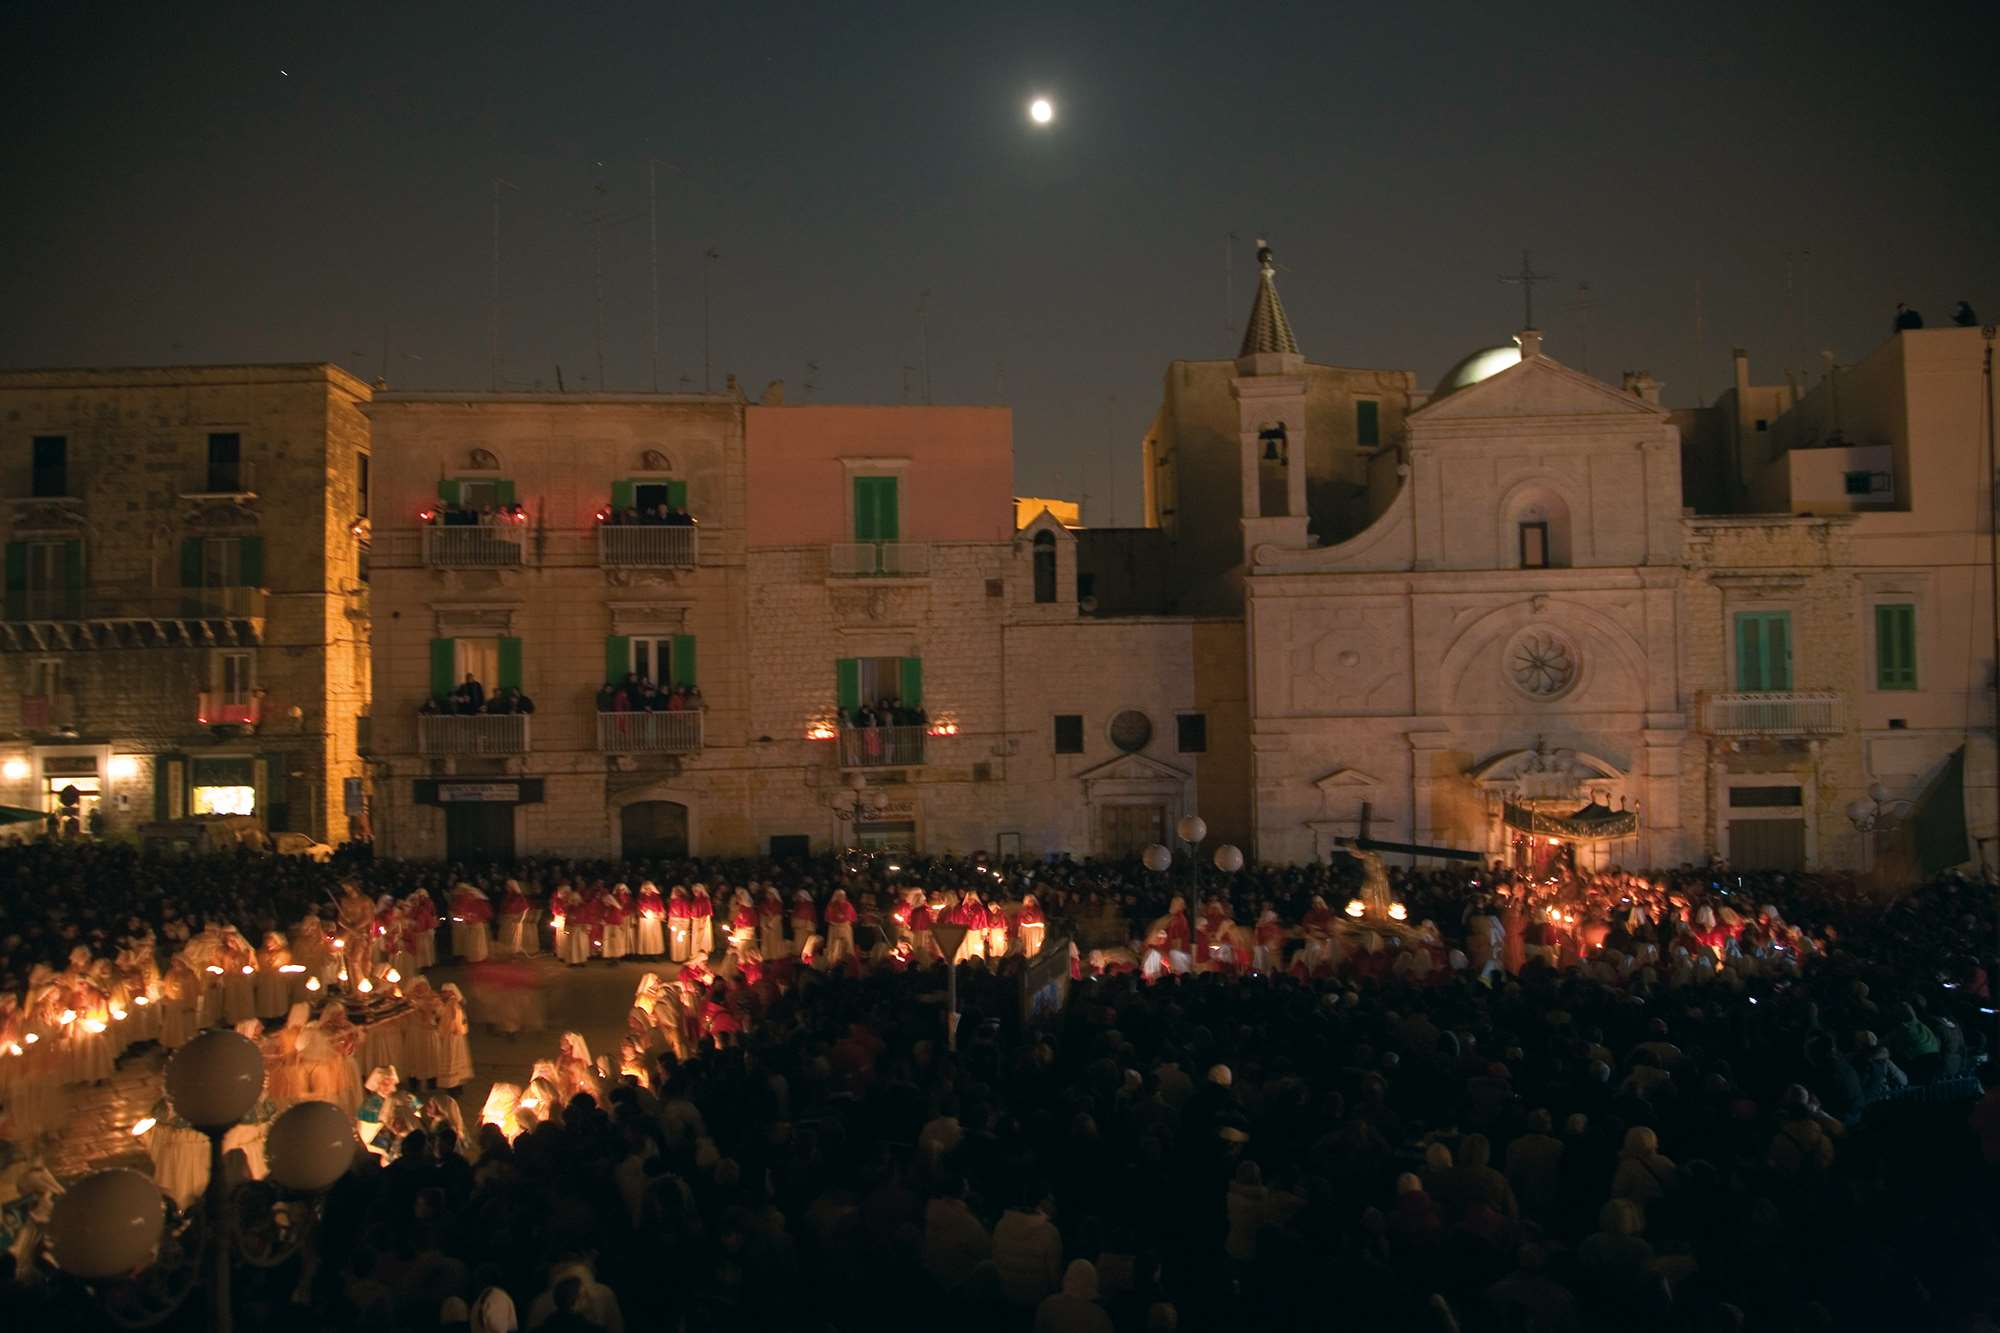 Holy week 2019 in Apulia region